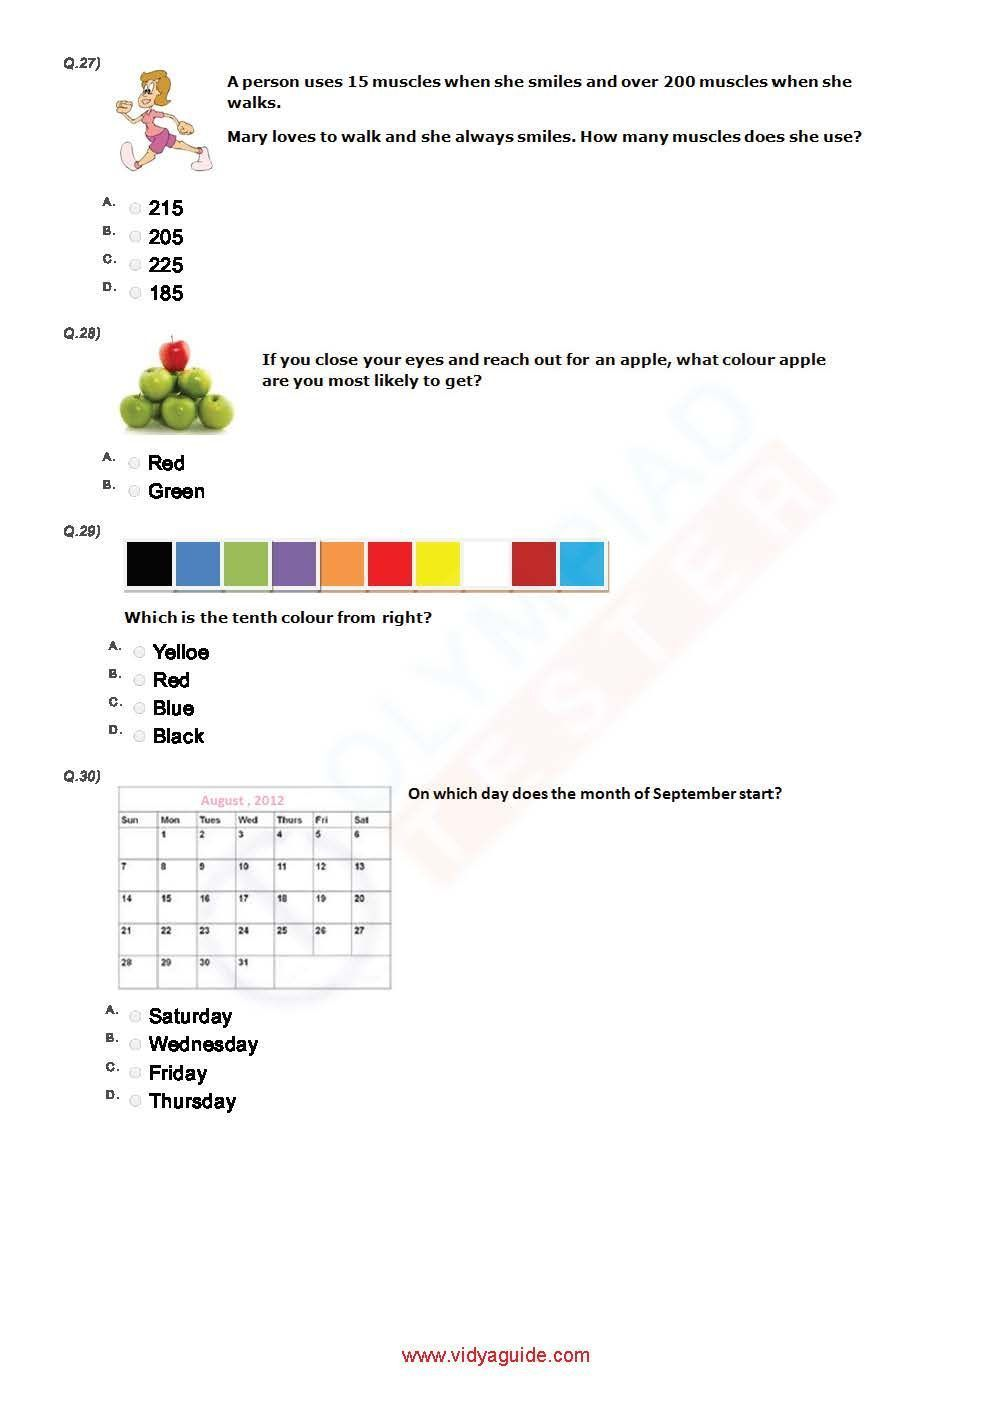 Maths Worksheet For Class 2 Worksheets Are Definitely The Spine To Students Learning And In 2021 2nd Grade Math Worksheets Maths Worksheet For Class 2 Math Olympiad Grade math olympiad worksheets pdf